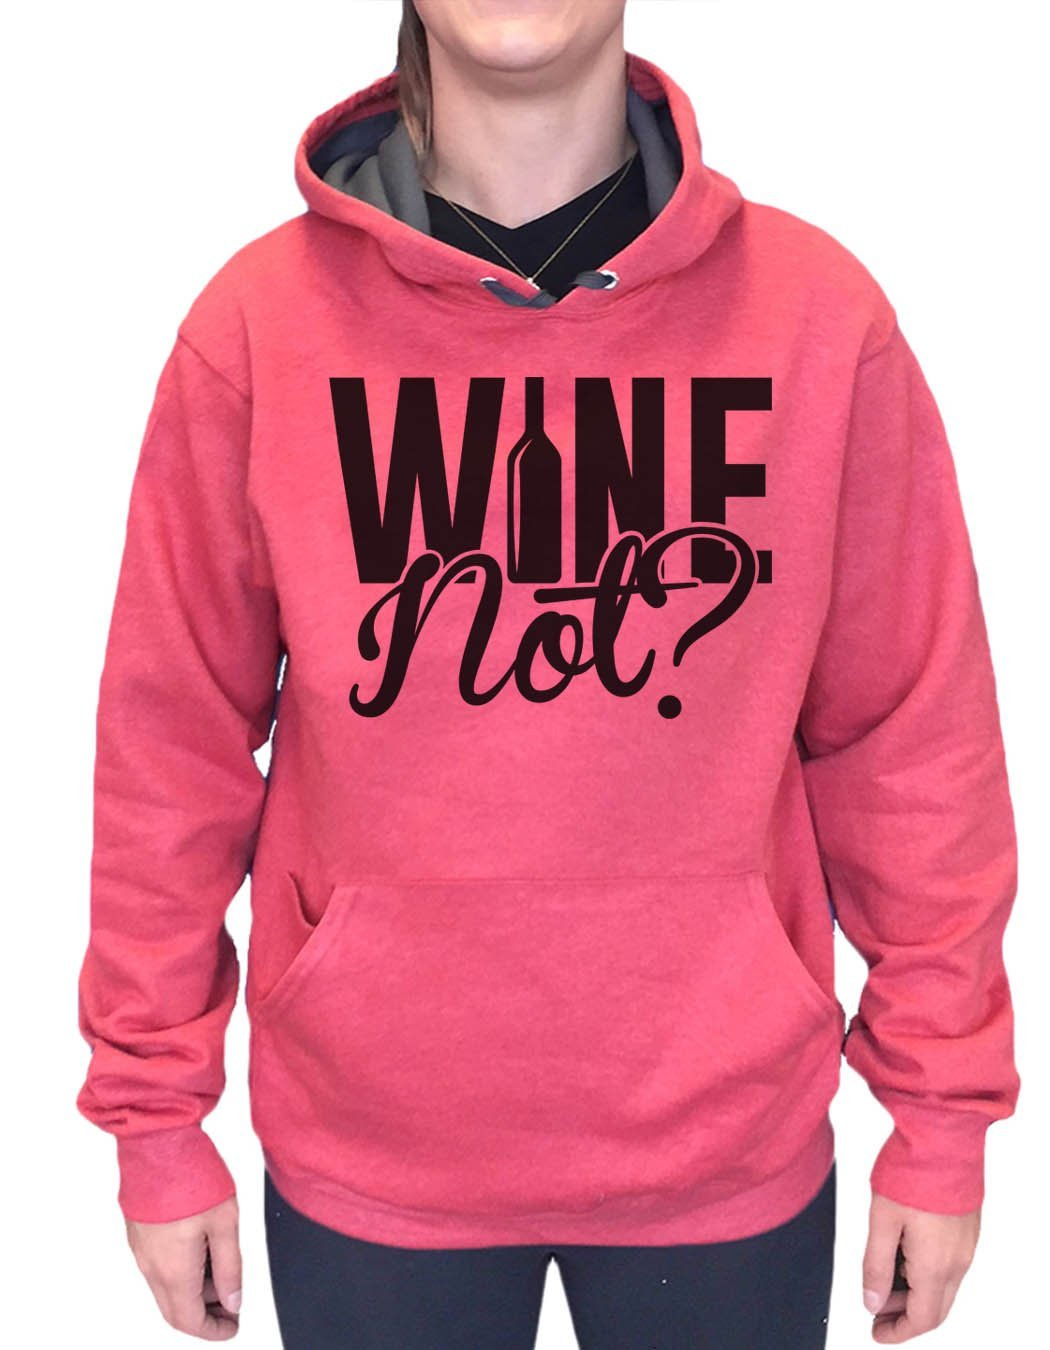 UNISEX HOODIE - Wine Not? - FUNNY MENS AND WOMENS HOODED SWEATSHIRTS - 2161 Funny Shirt Small / Cranberry Red